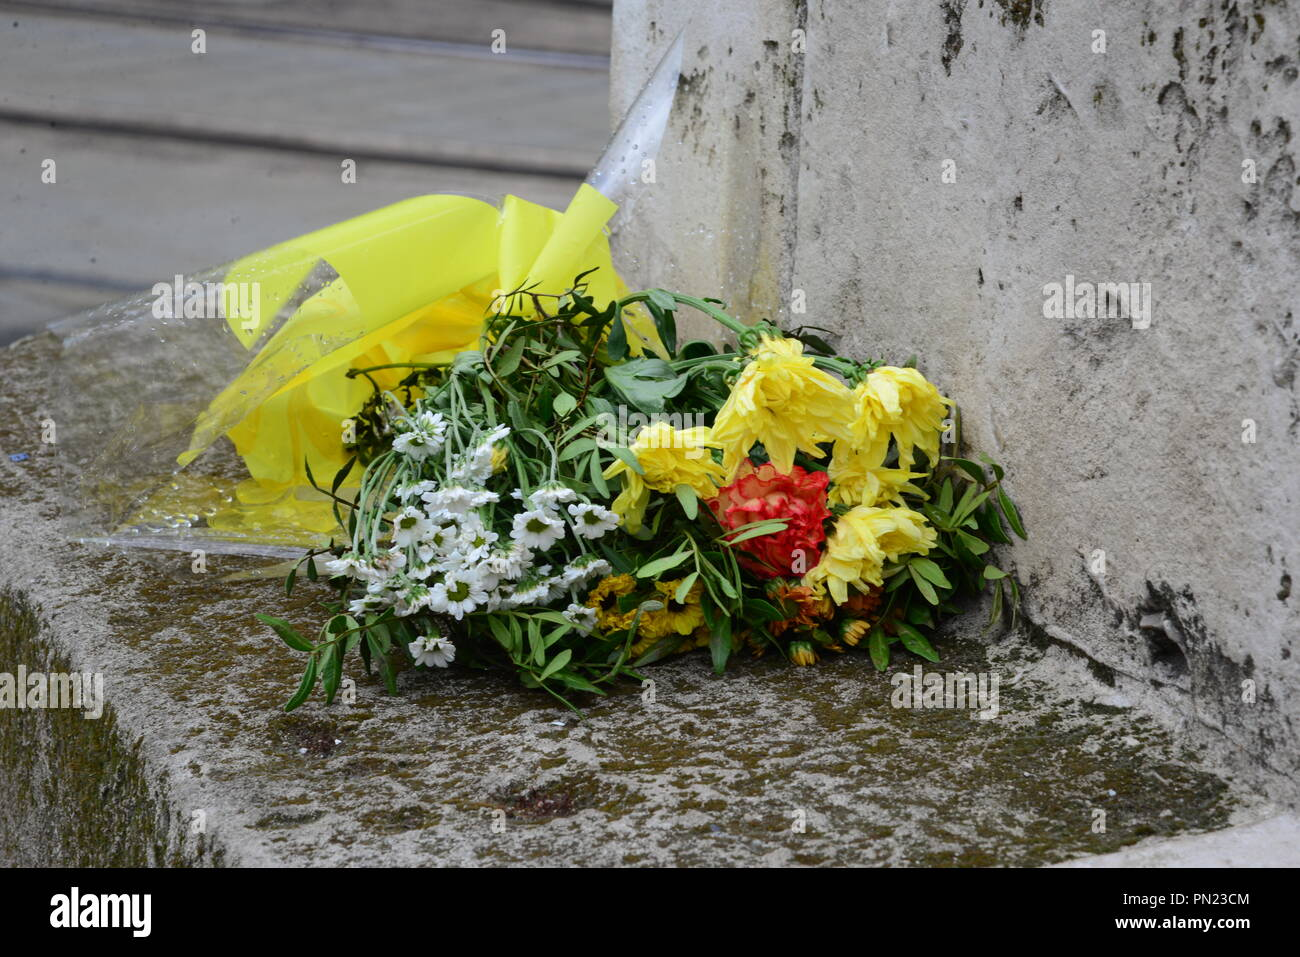 Peterloo memorial flowers Stock Photo